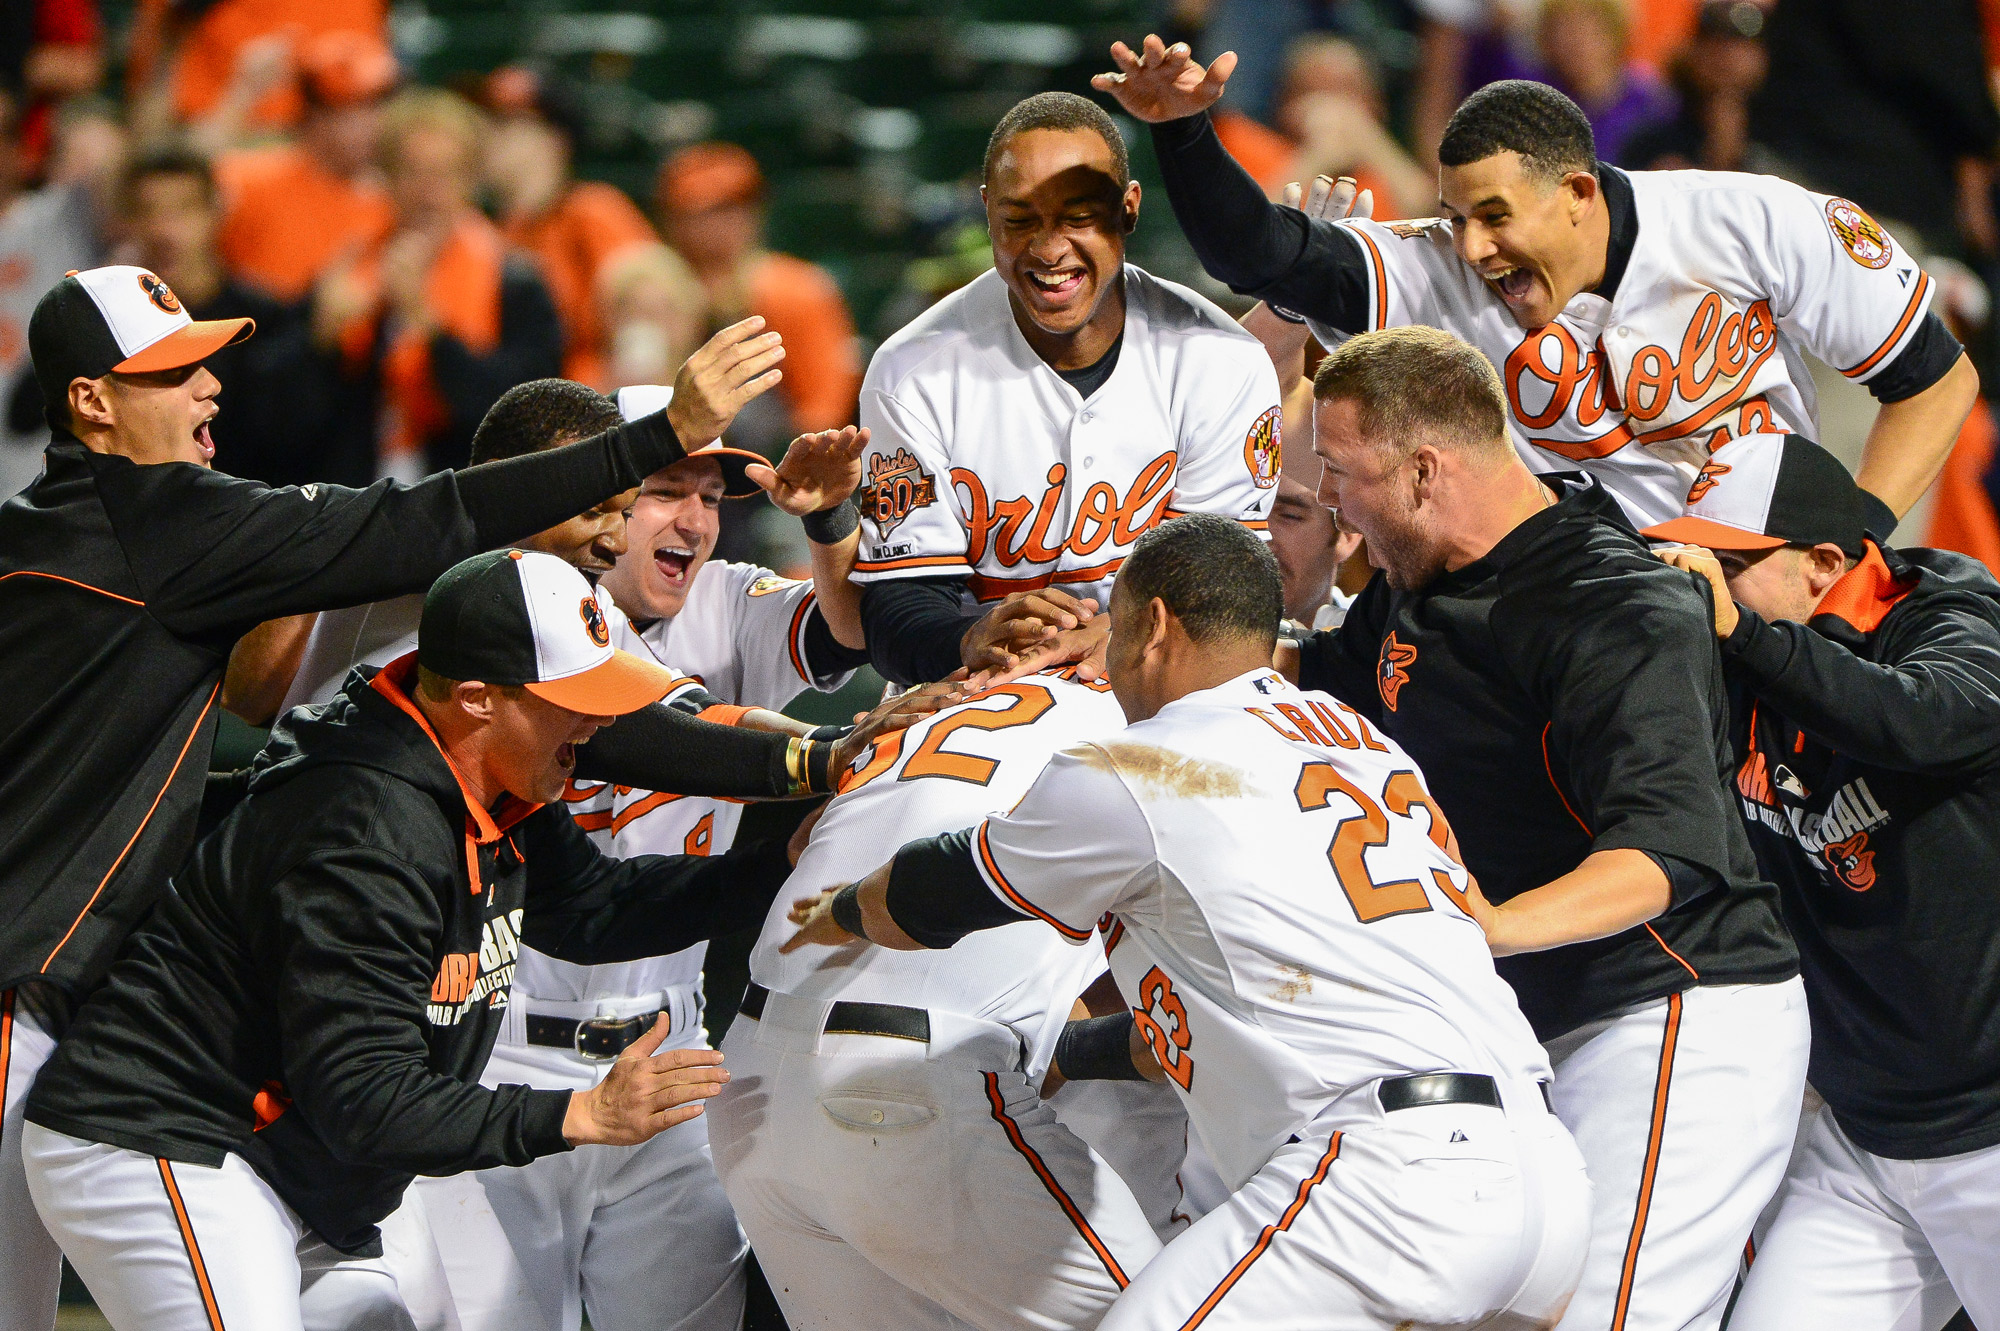 Baltimore Orioles' Matt Wieters is swarmed by his teammates at home plate after hitting the walk-off home run to beat the Pittsburgh Pirates in the 10th inning at Oriole Park at Camden Yards in Baltimore, Maryland on May 1, 2014